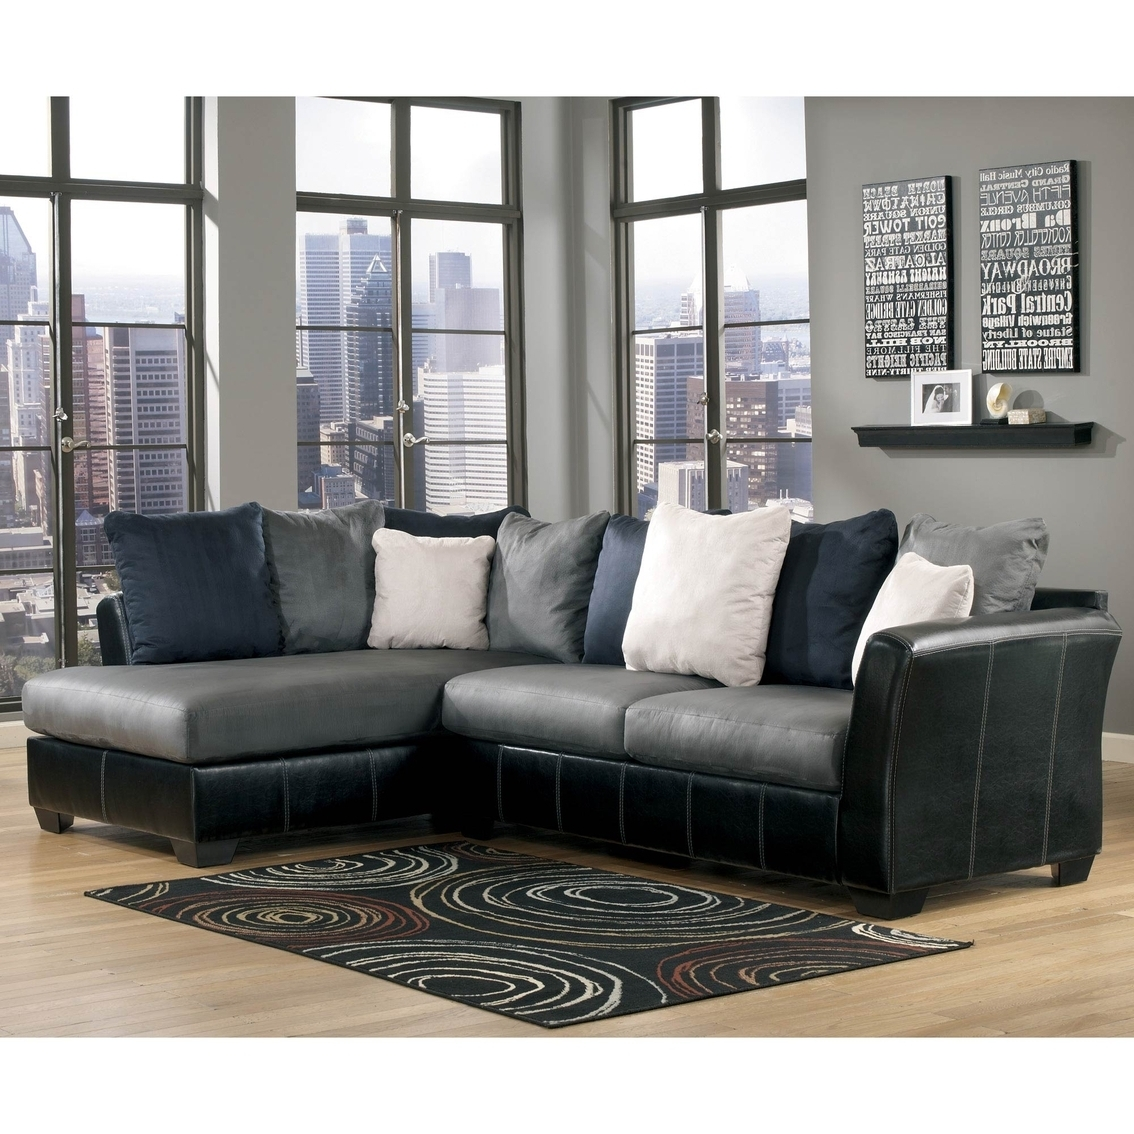 Ottawa Sectional Sofas Throughout Recent Ashley Sectional Sofa With Chaise – Hotelsbacau (View 11 of 20)